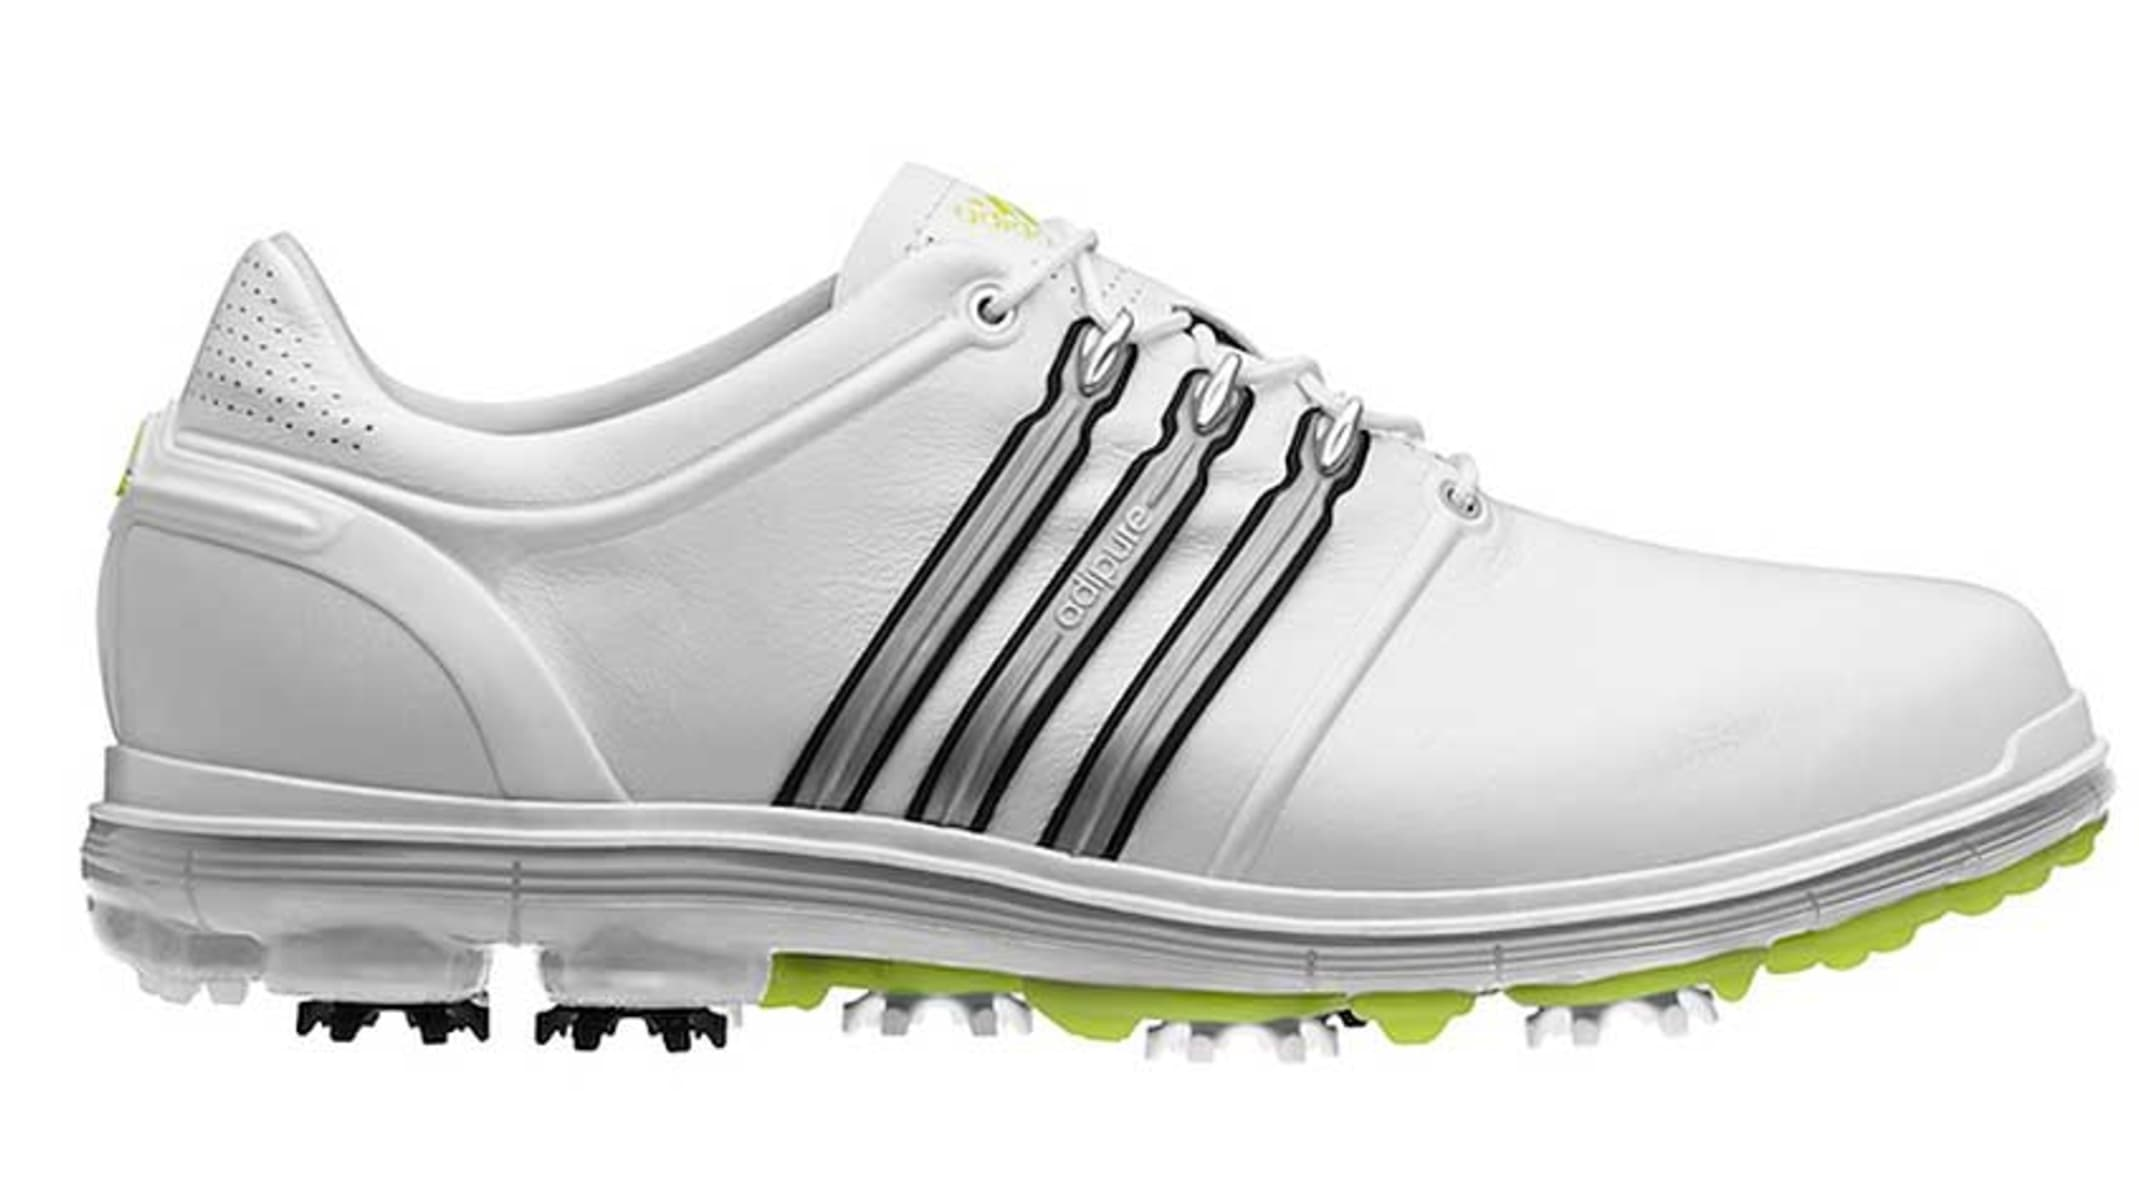 Adidas launches pure 360 line